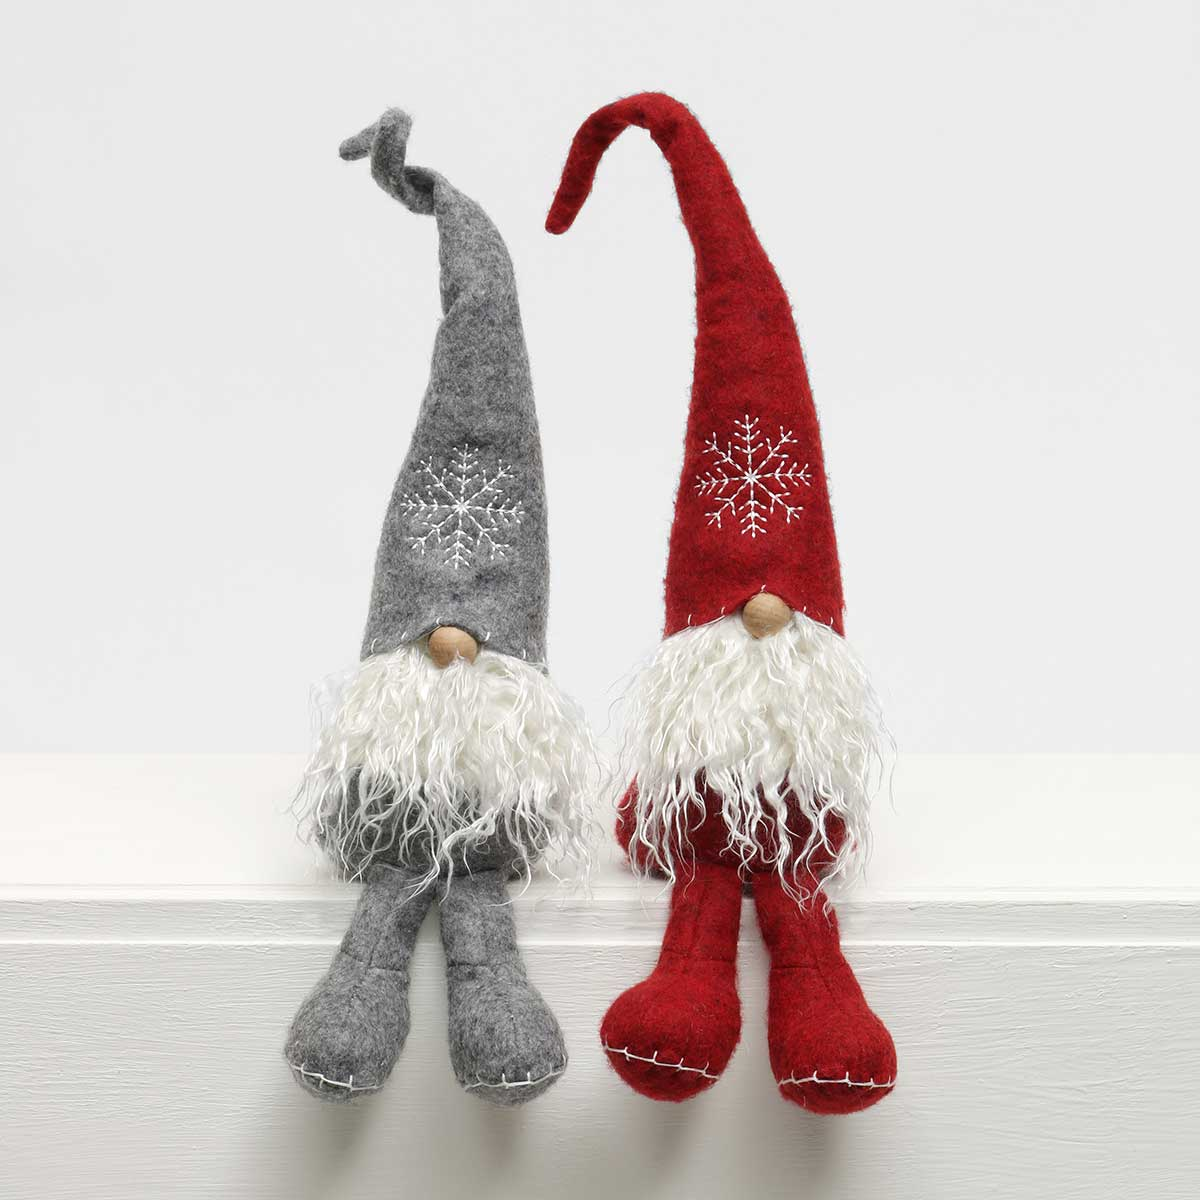 SCHNITZEL GNOME WITH SNOWFLAKE HAT,